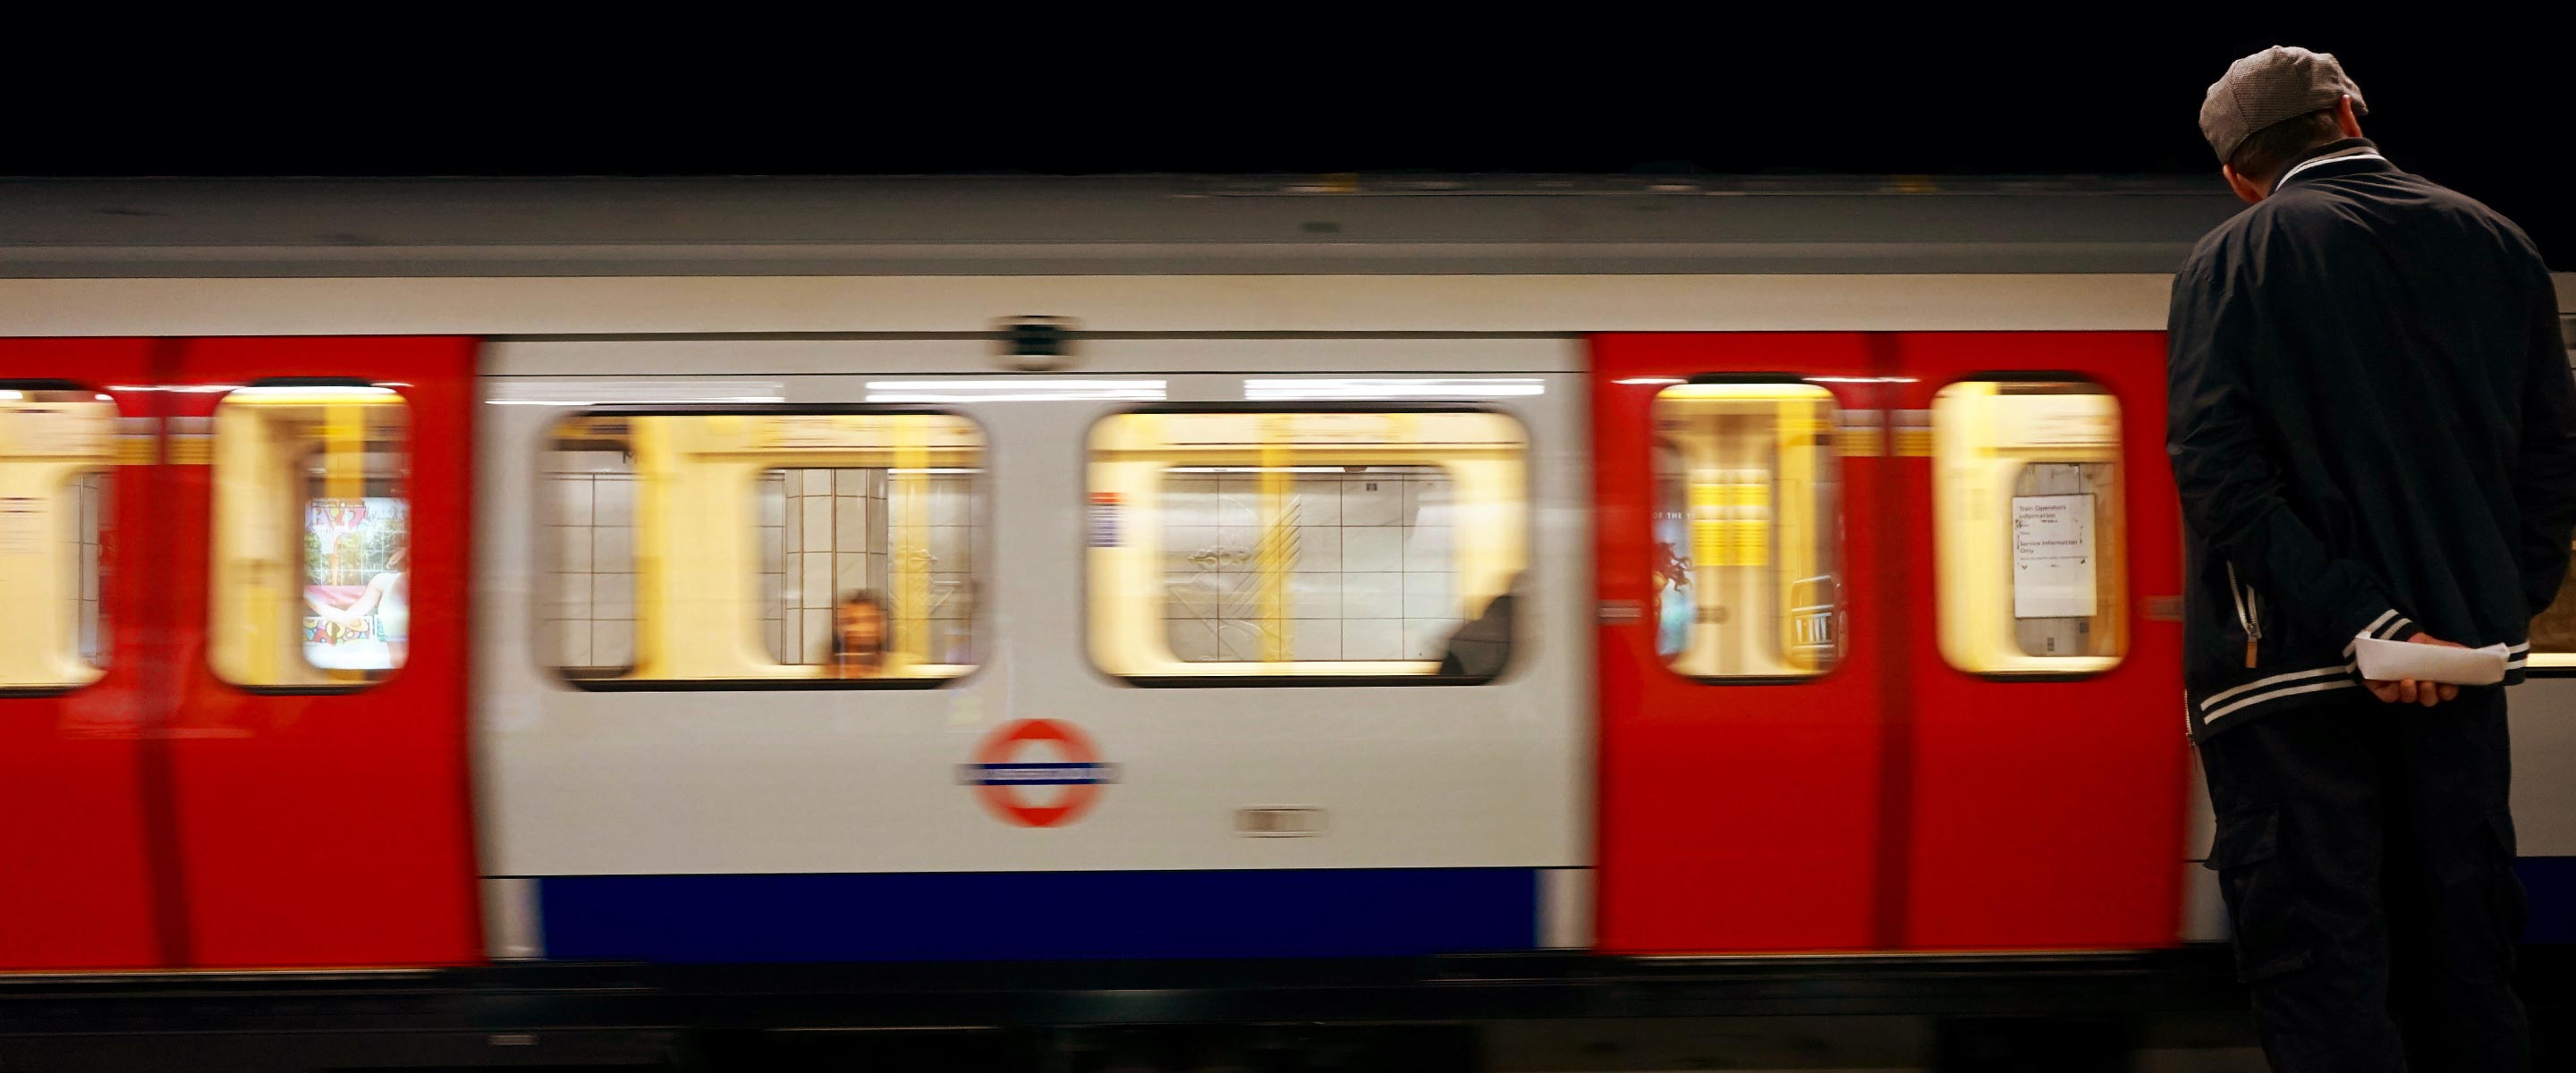 A tube pulling into the station